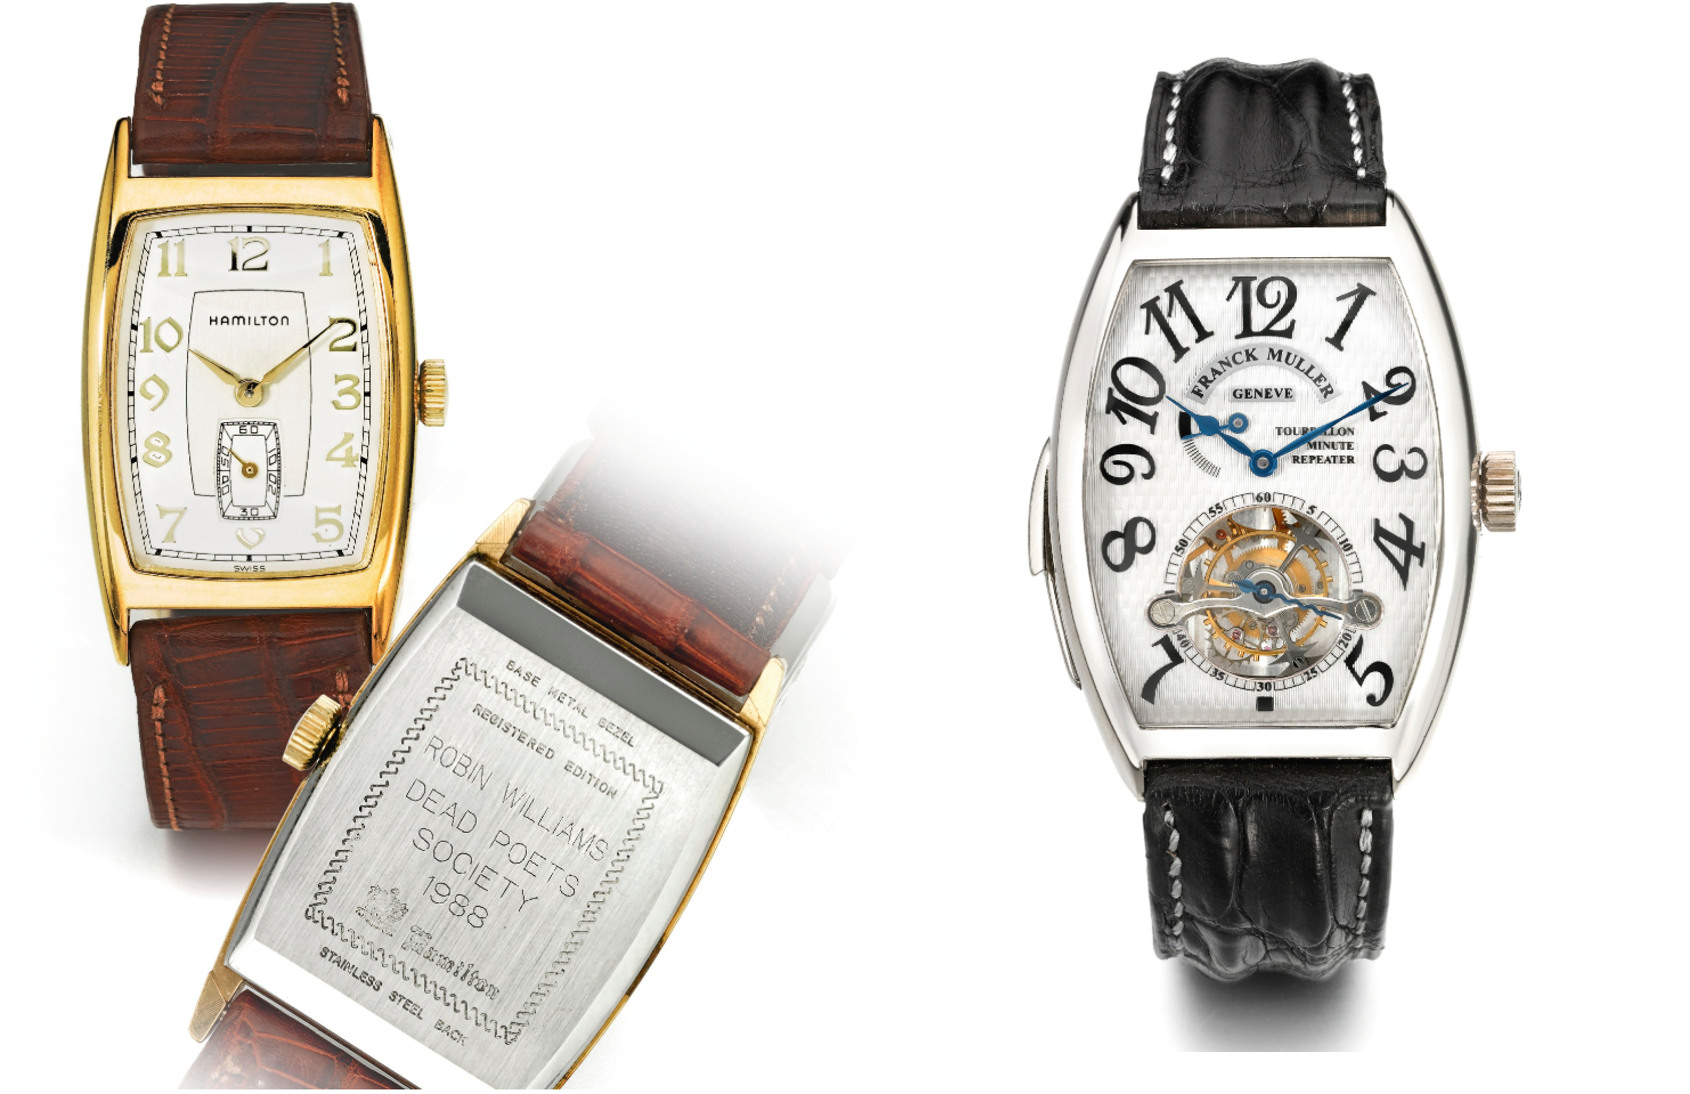 Sothebys Auction Results >> News All Watches Sell At Sotheby S Auction Of Robin Williams